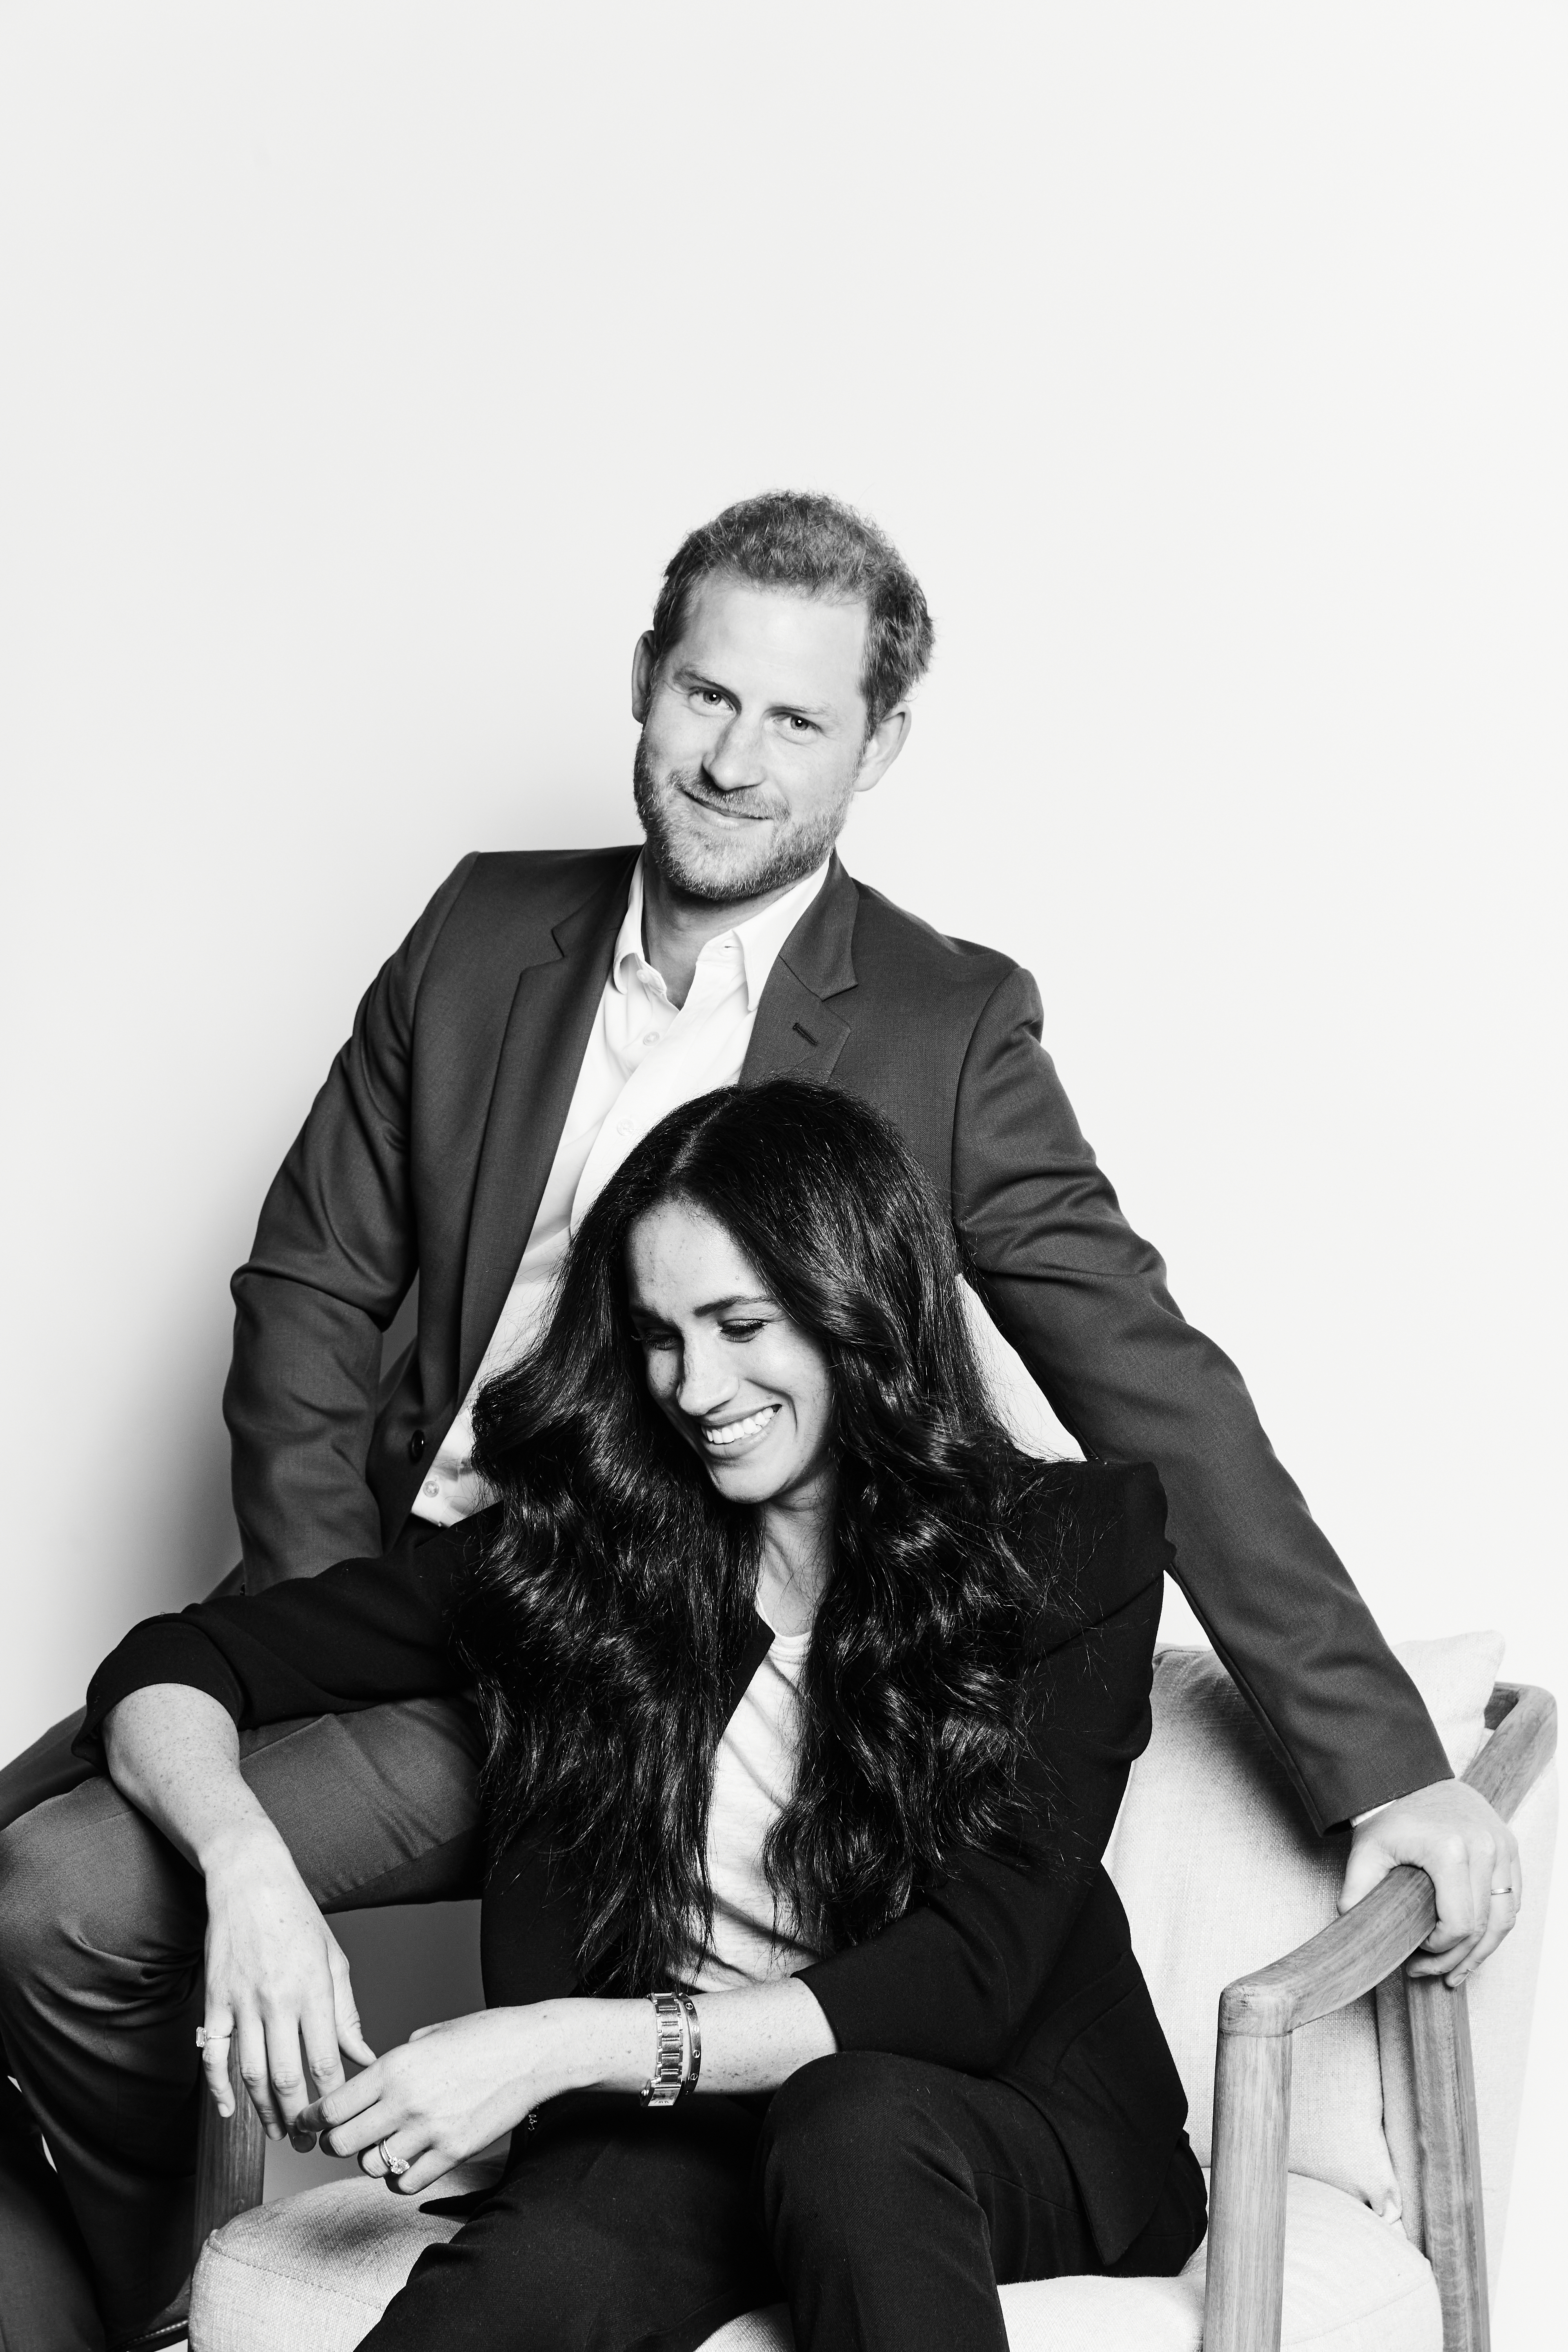 Prince Harry and Meghan, The Duke and Duchess of Sussex, will host a specially curated edition of TIME100 Talks.